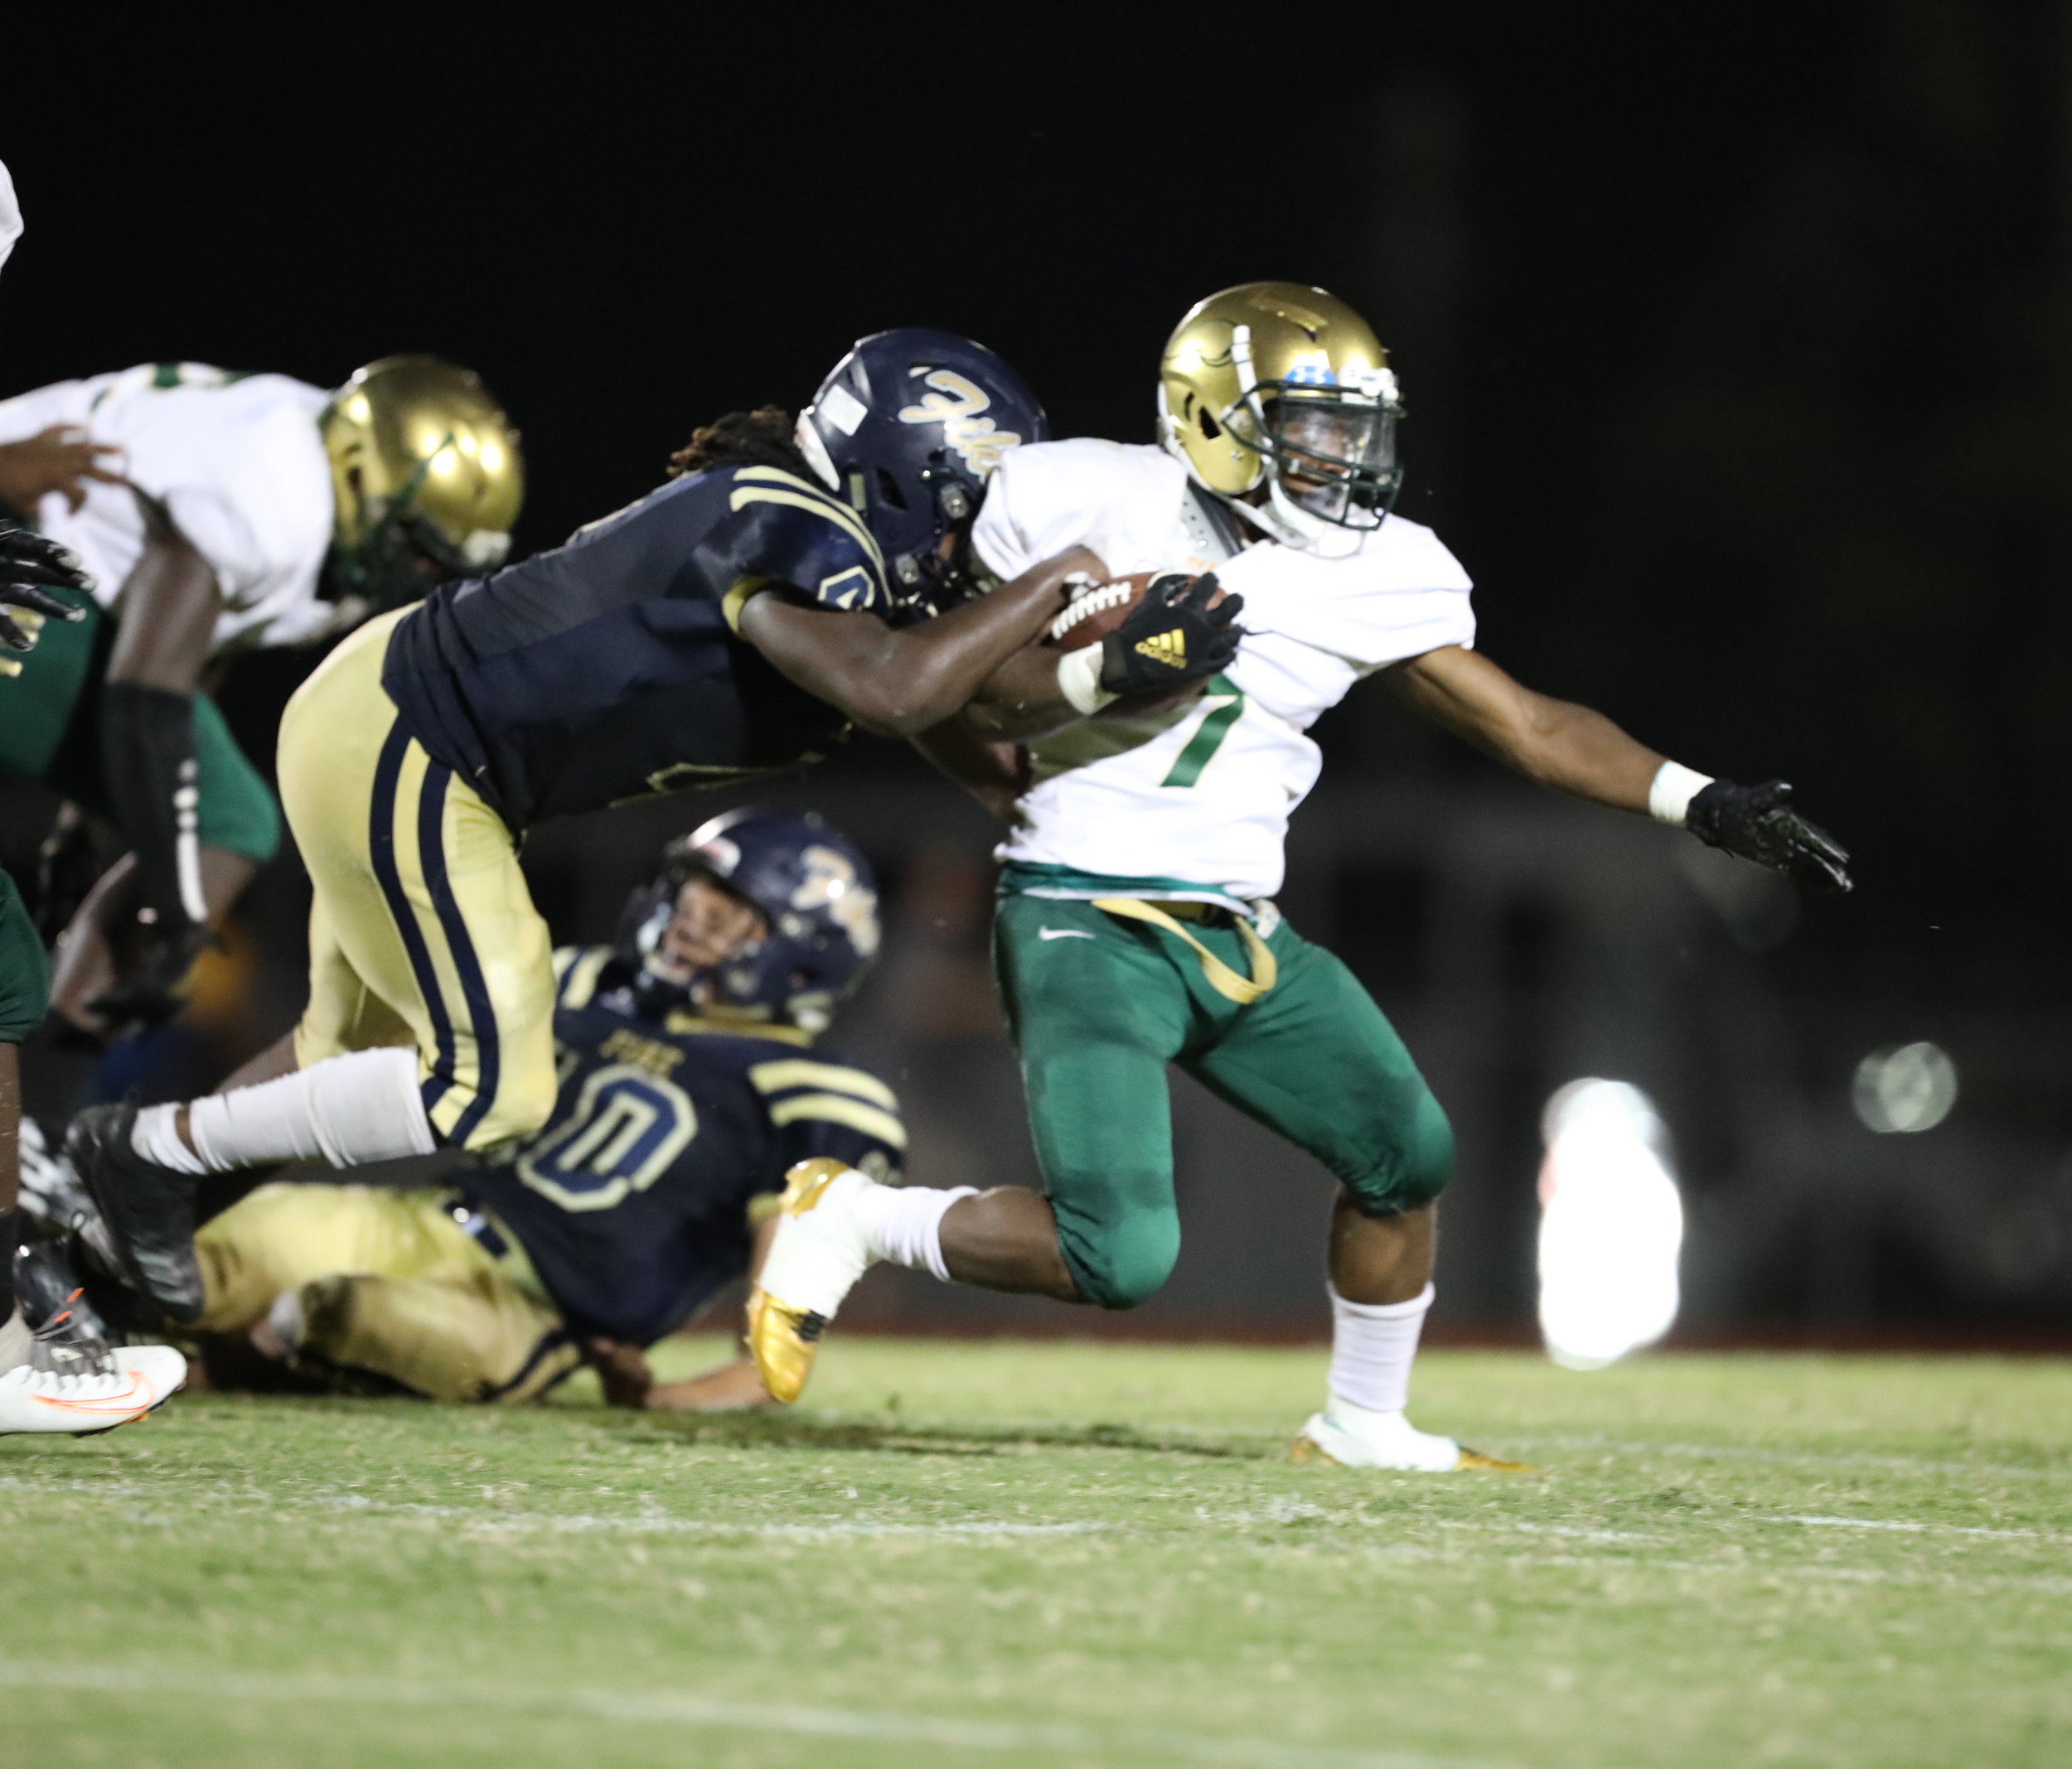 Iverson Ward, Kinston's leading rusher, attempts to break out of a Fike tackle attempt during the Vikings' 35-21 loss on Fike turf Wednesday night. Sheldon Vick   The Wilson Times